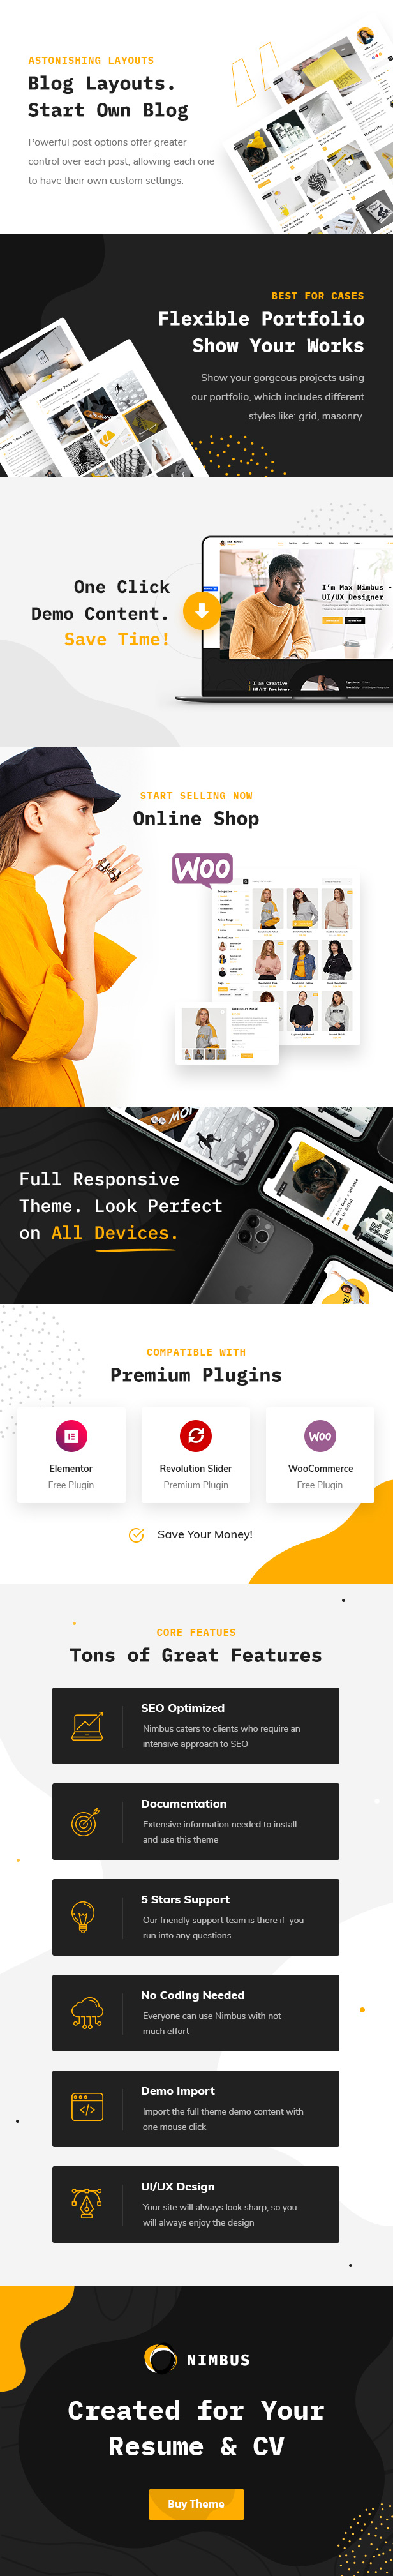 Nimbus - CV & Portfolio WordPress Theme - 2